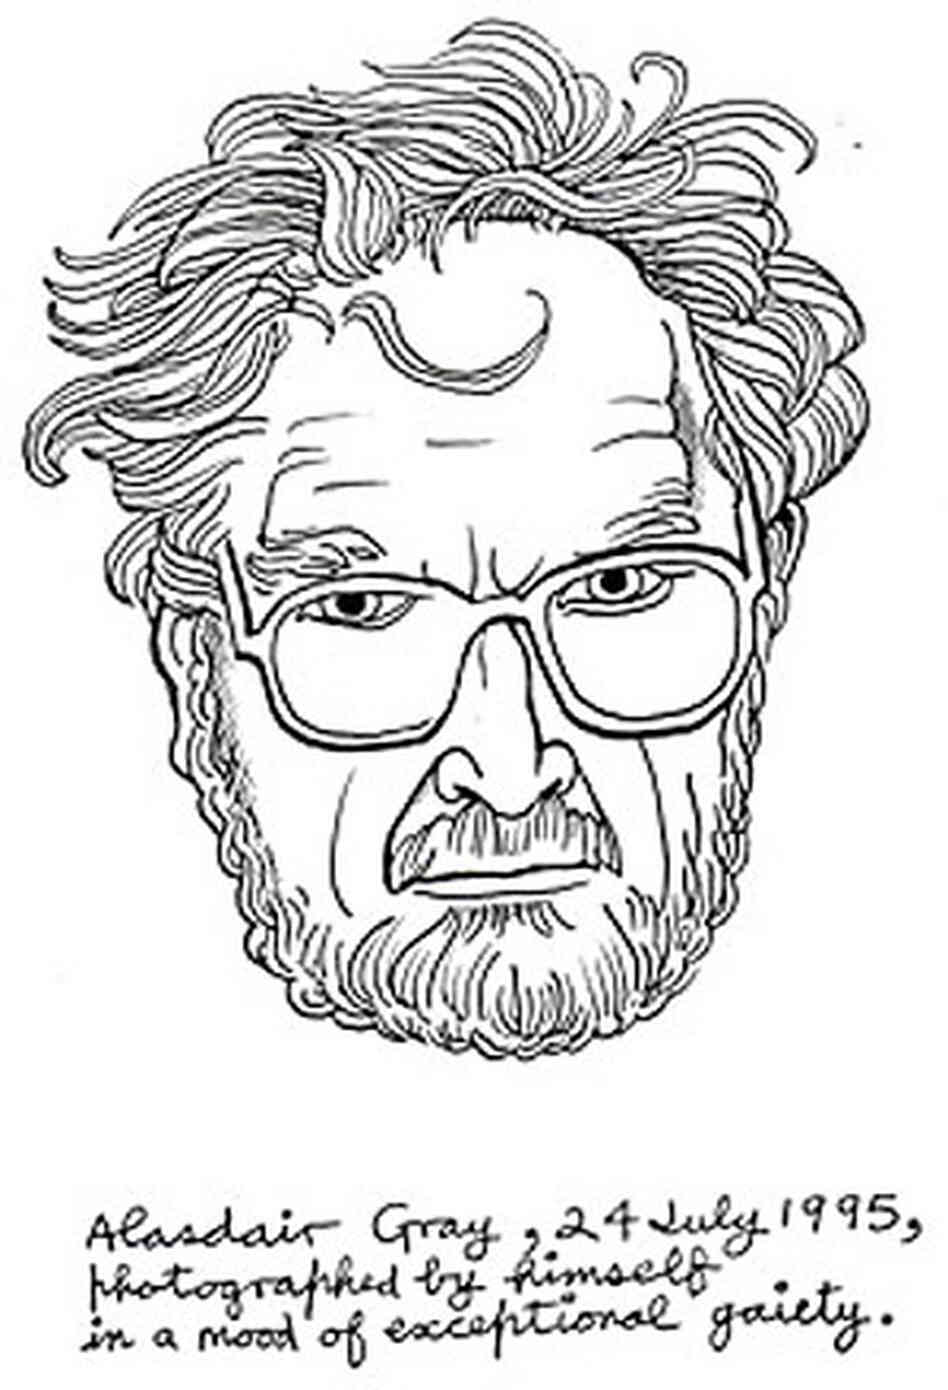 Alasdair Gray self-portrait